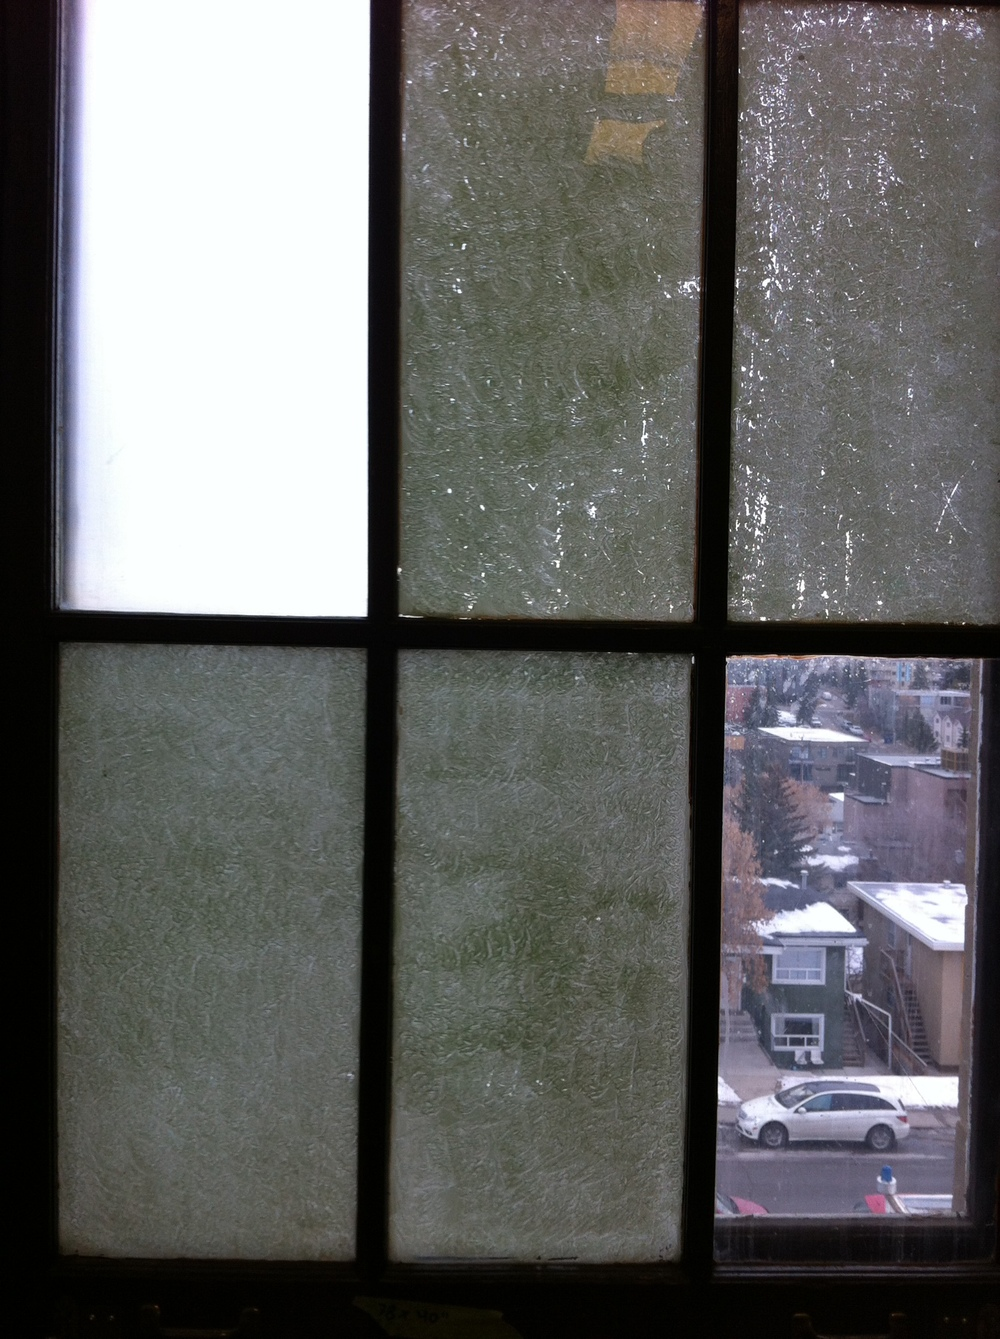 I thought this window with just one clear pane created an interesting juxtaposition of light and space.